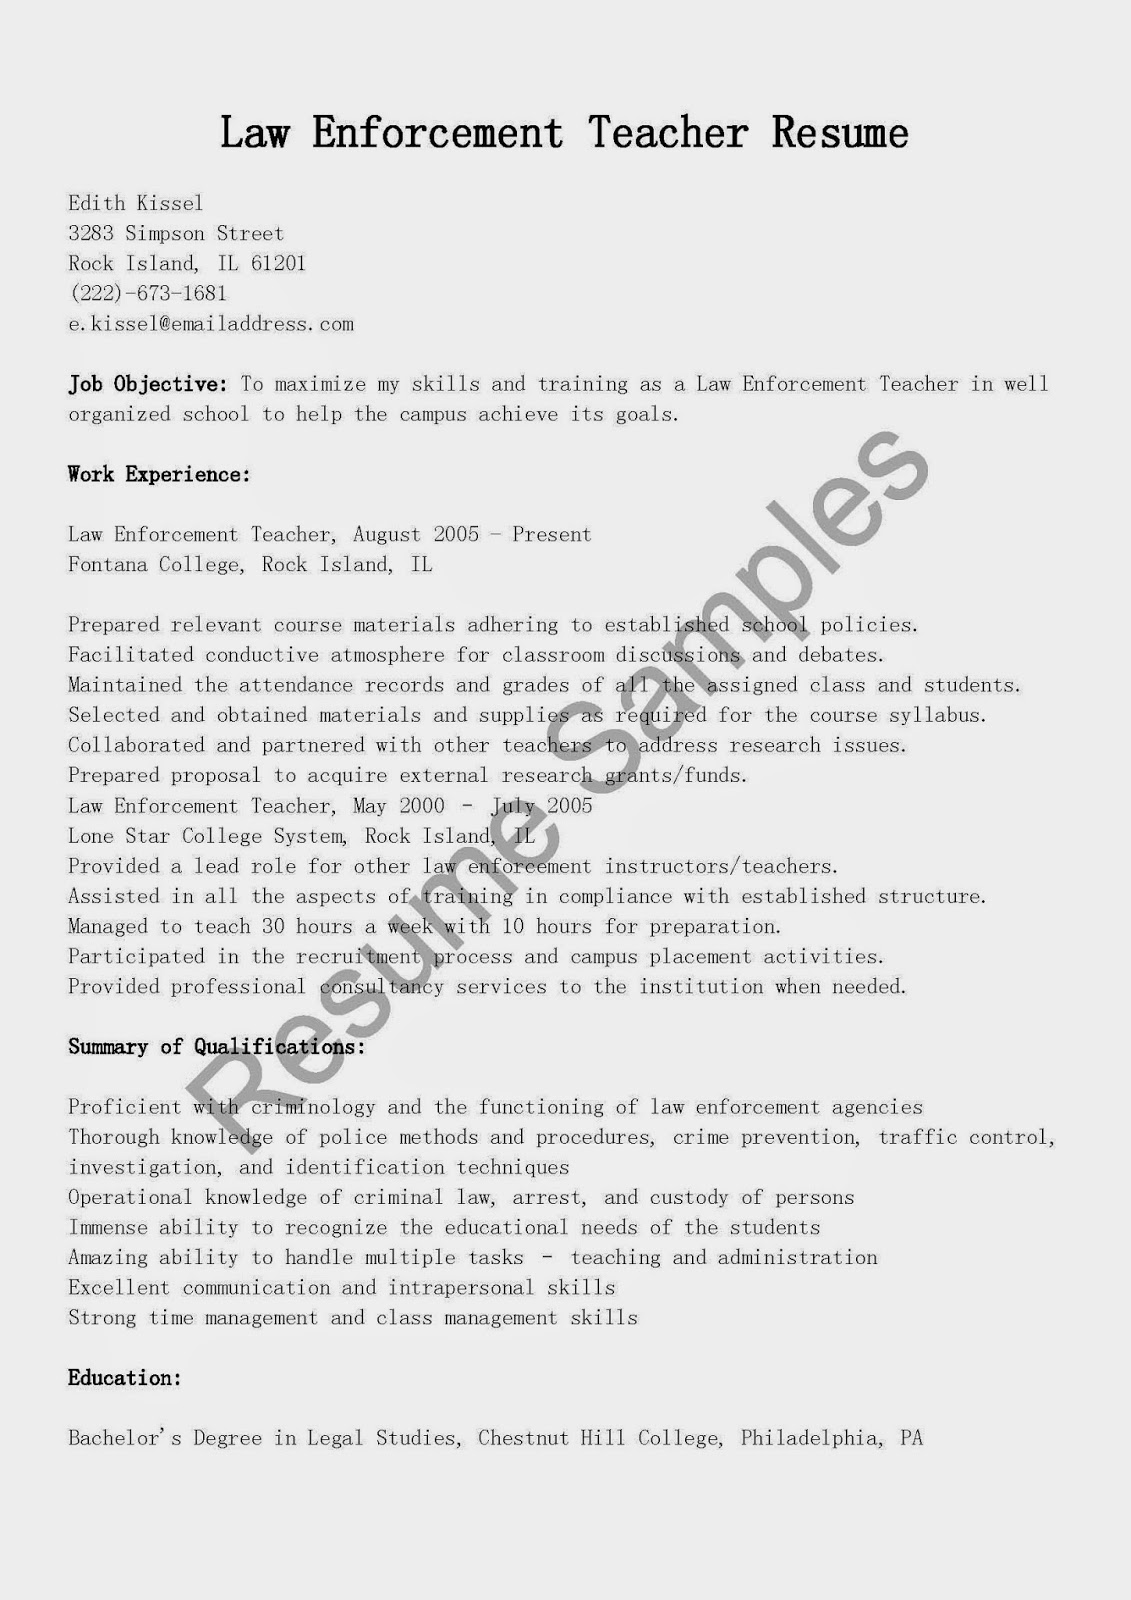 resume samples  law enforcement teacher resume sample